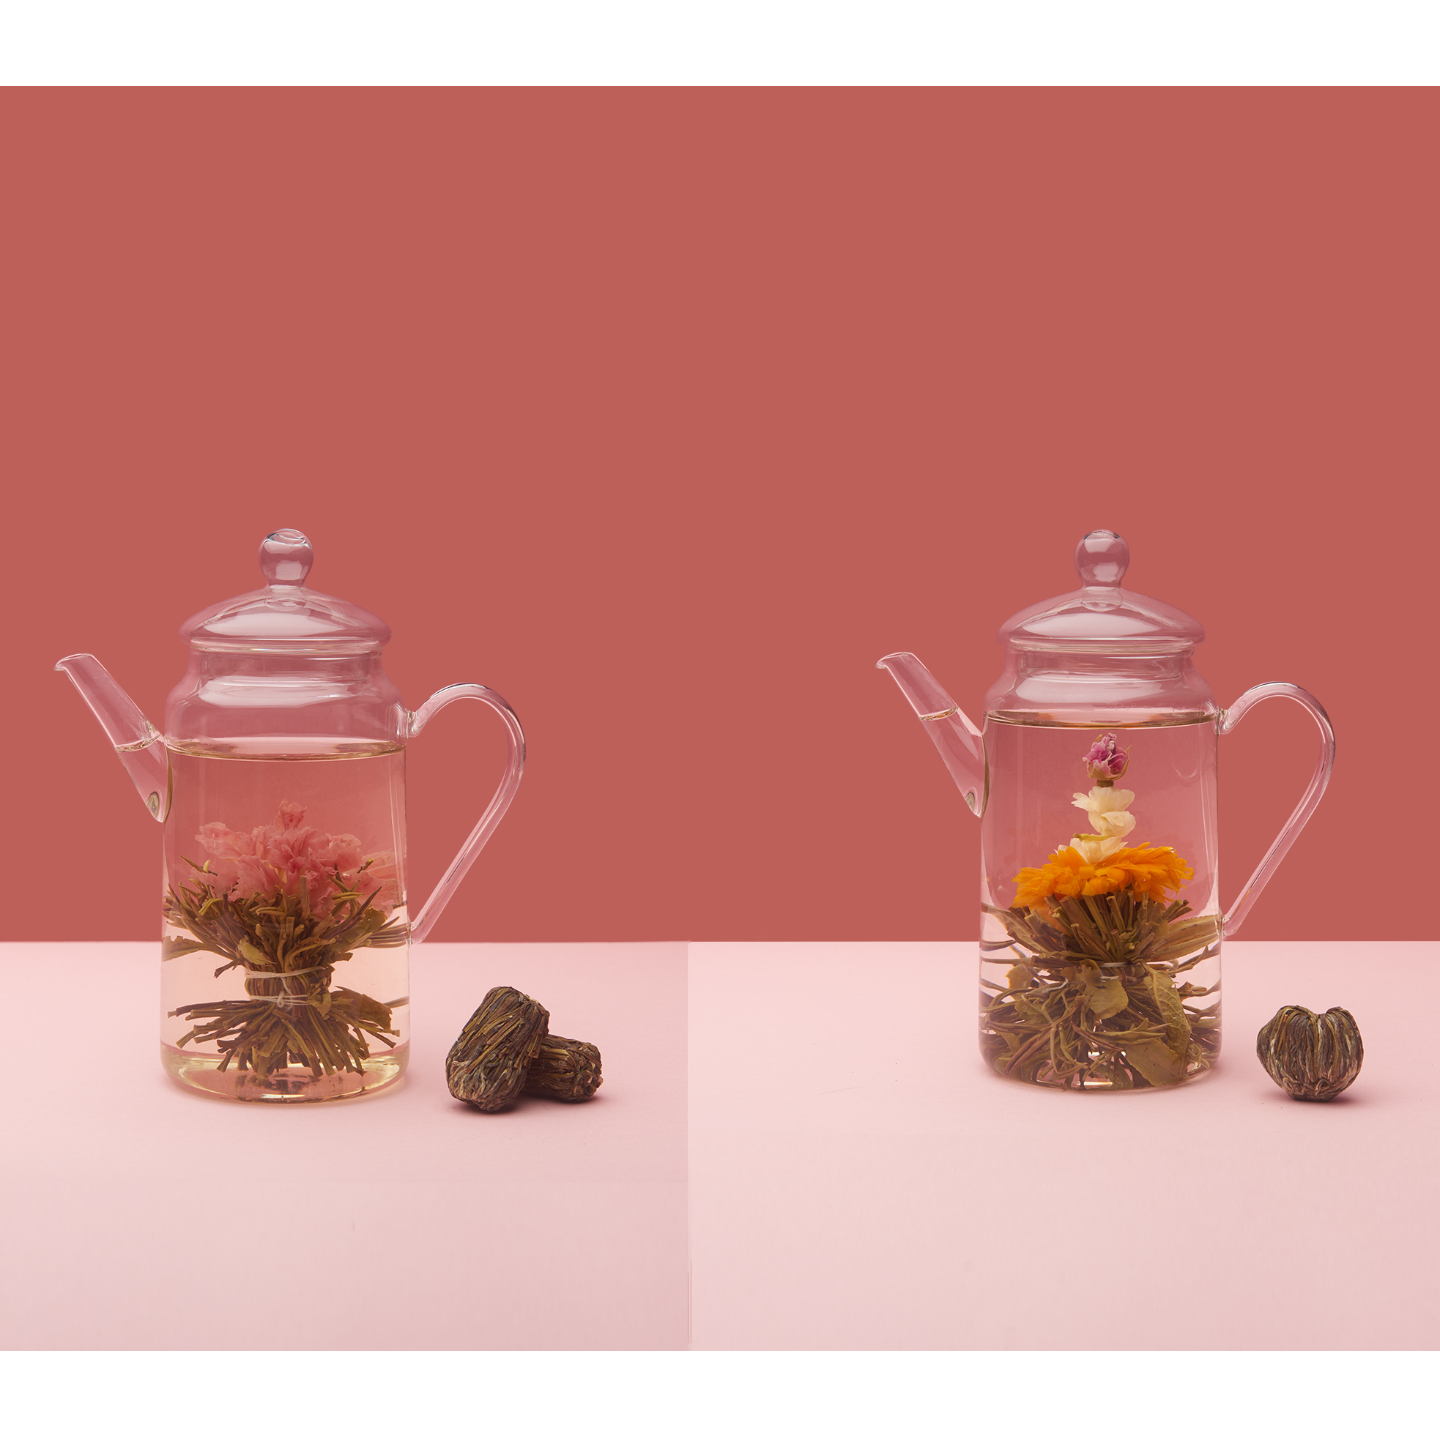 Two separate images of a clear transparent glass teapot placed beside each other. Both teapots are filled with water with two different types of blooming flowers found inside.